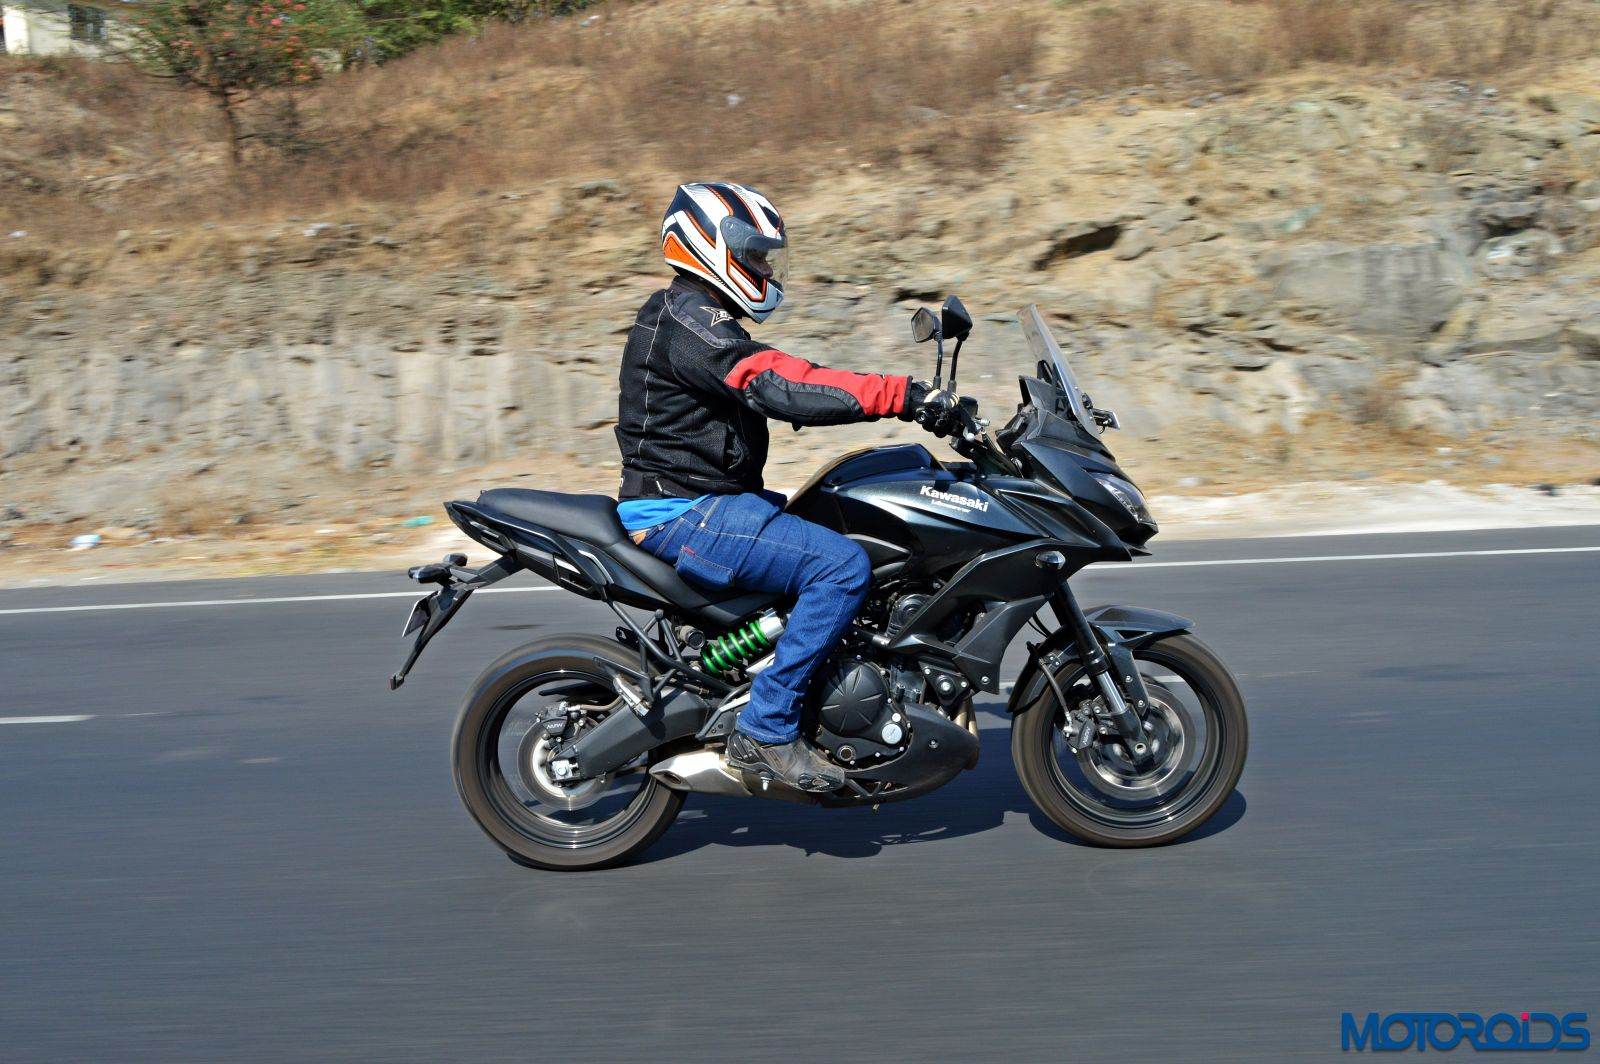 Kawasaki Versys 650 - Review - Action Shots (2)